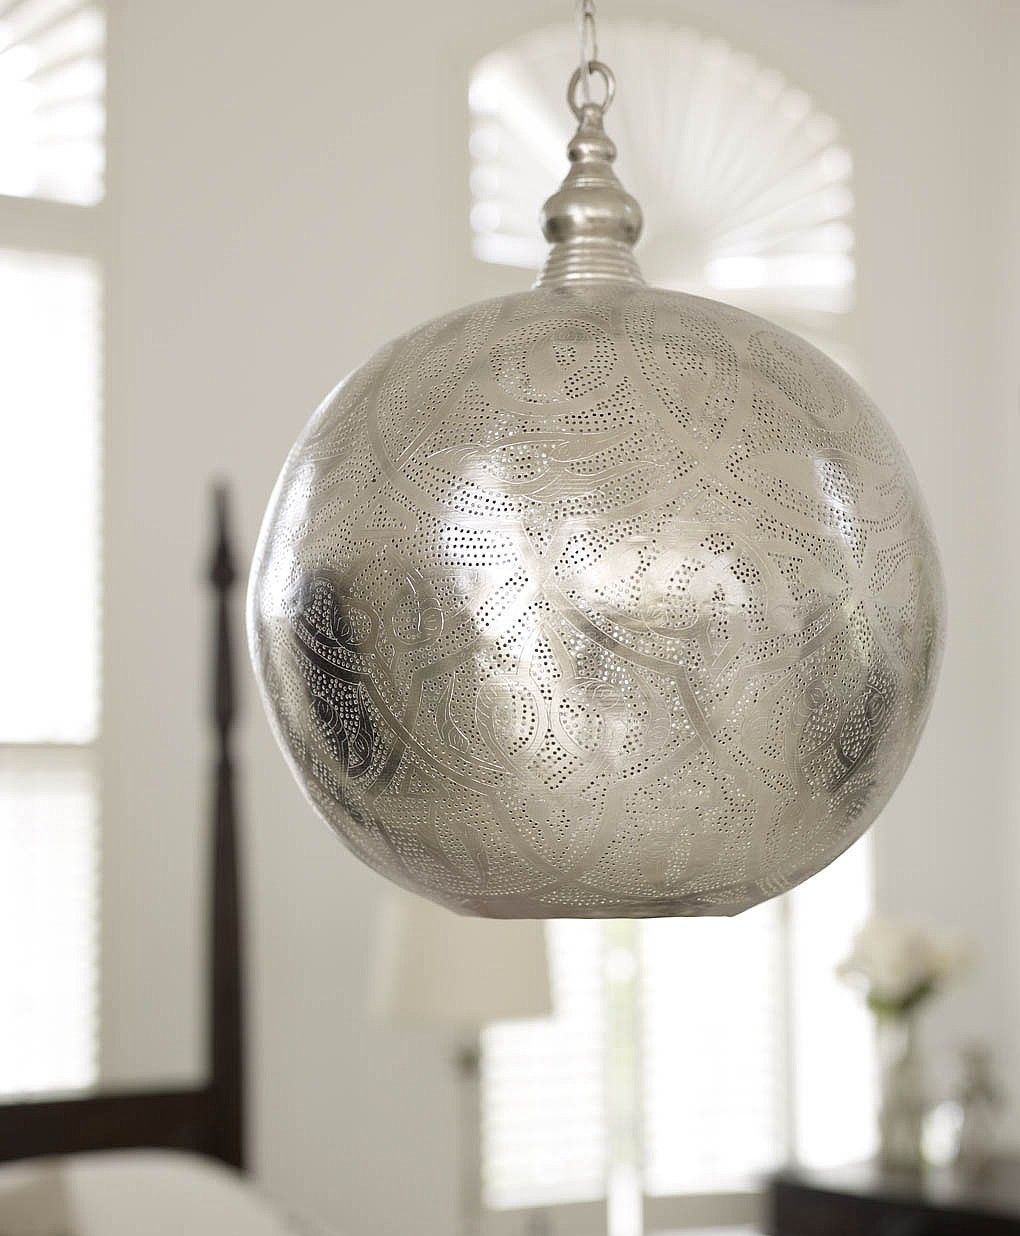 Moroccan Ceiling Light Shade   Lighting   Pinterest   Ceilings     Moroccan Ceiling Light Shade